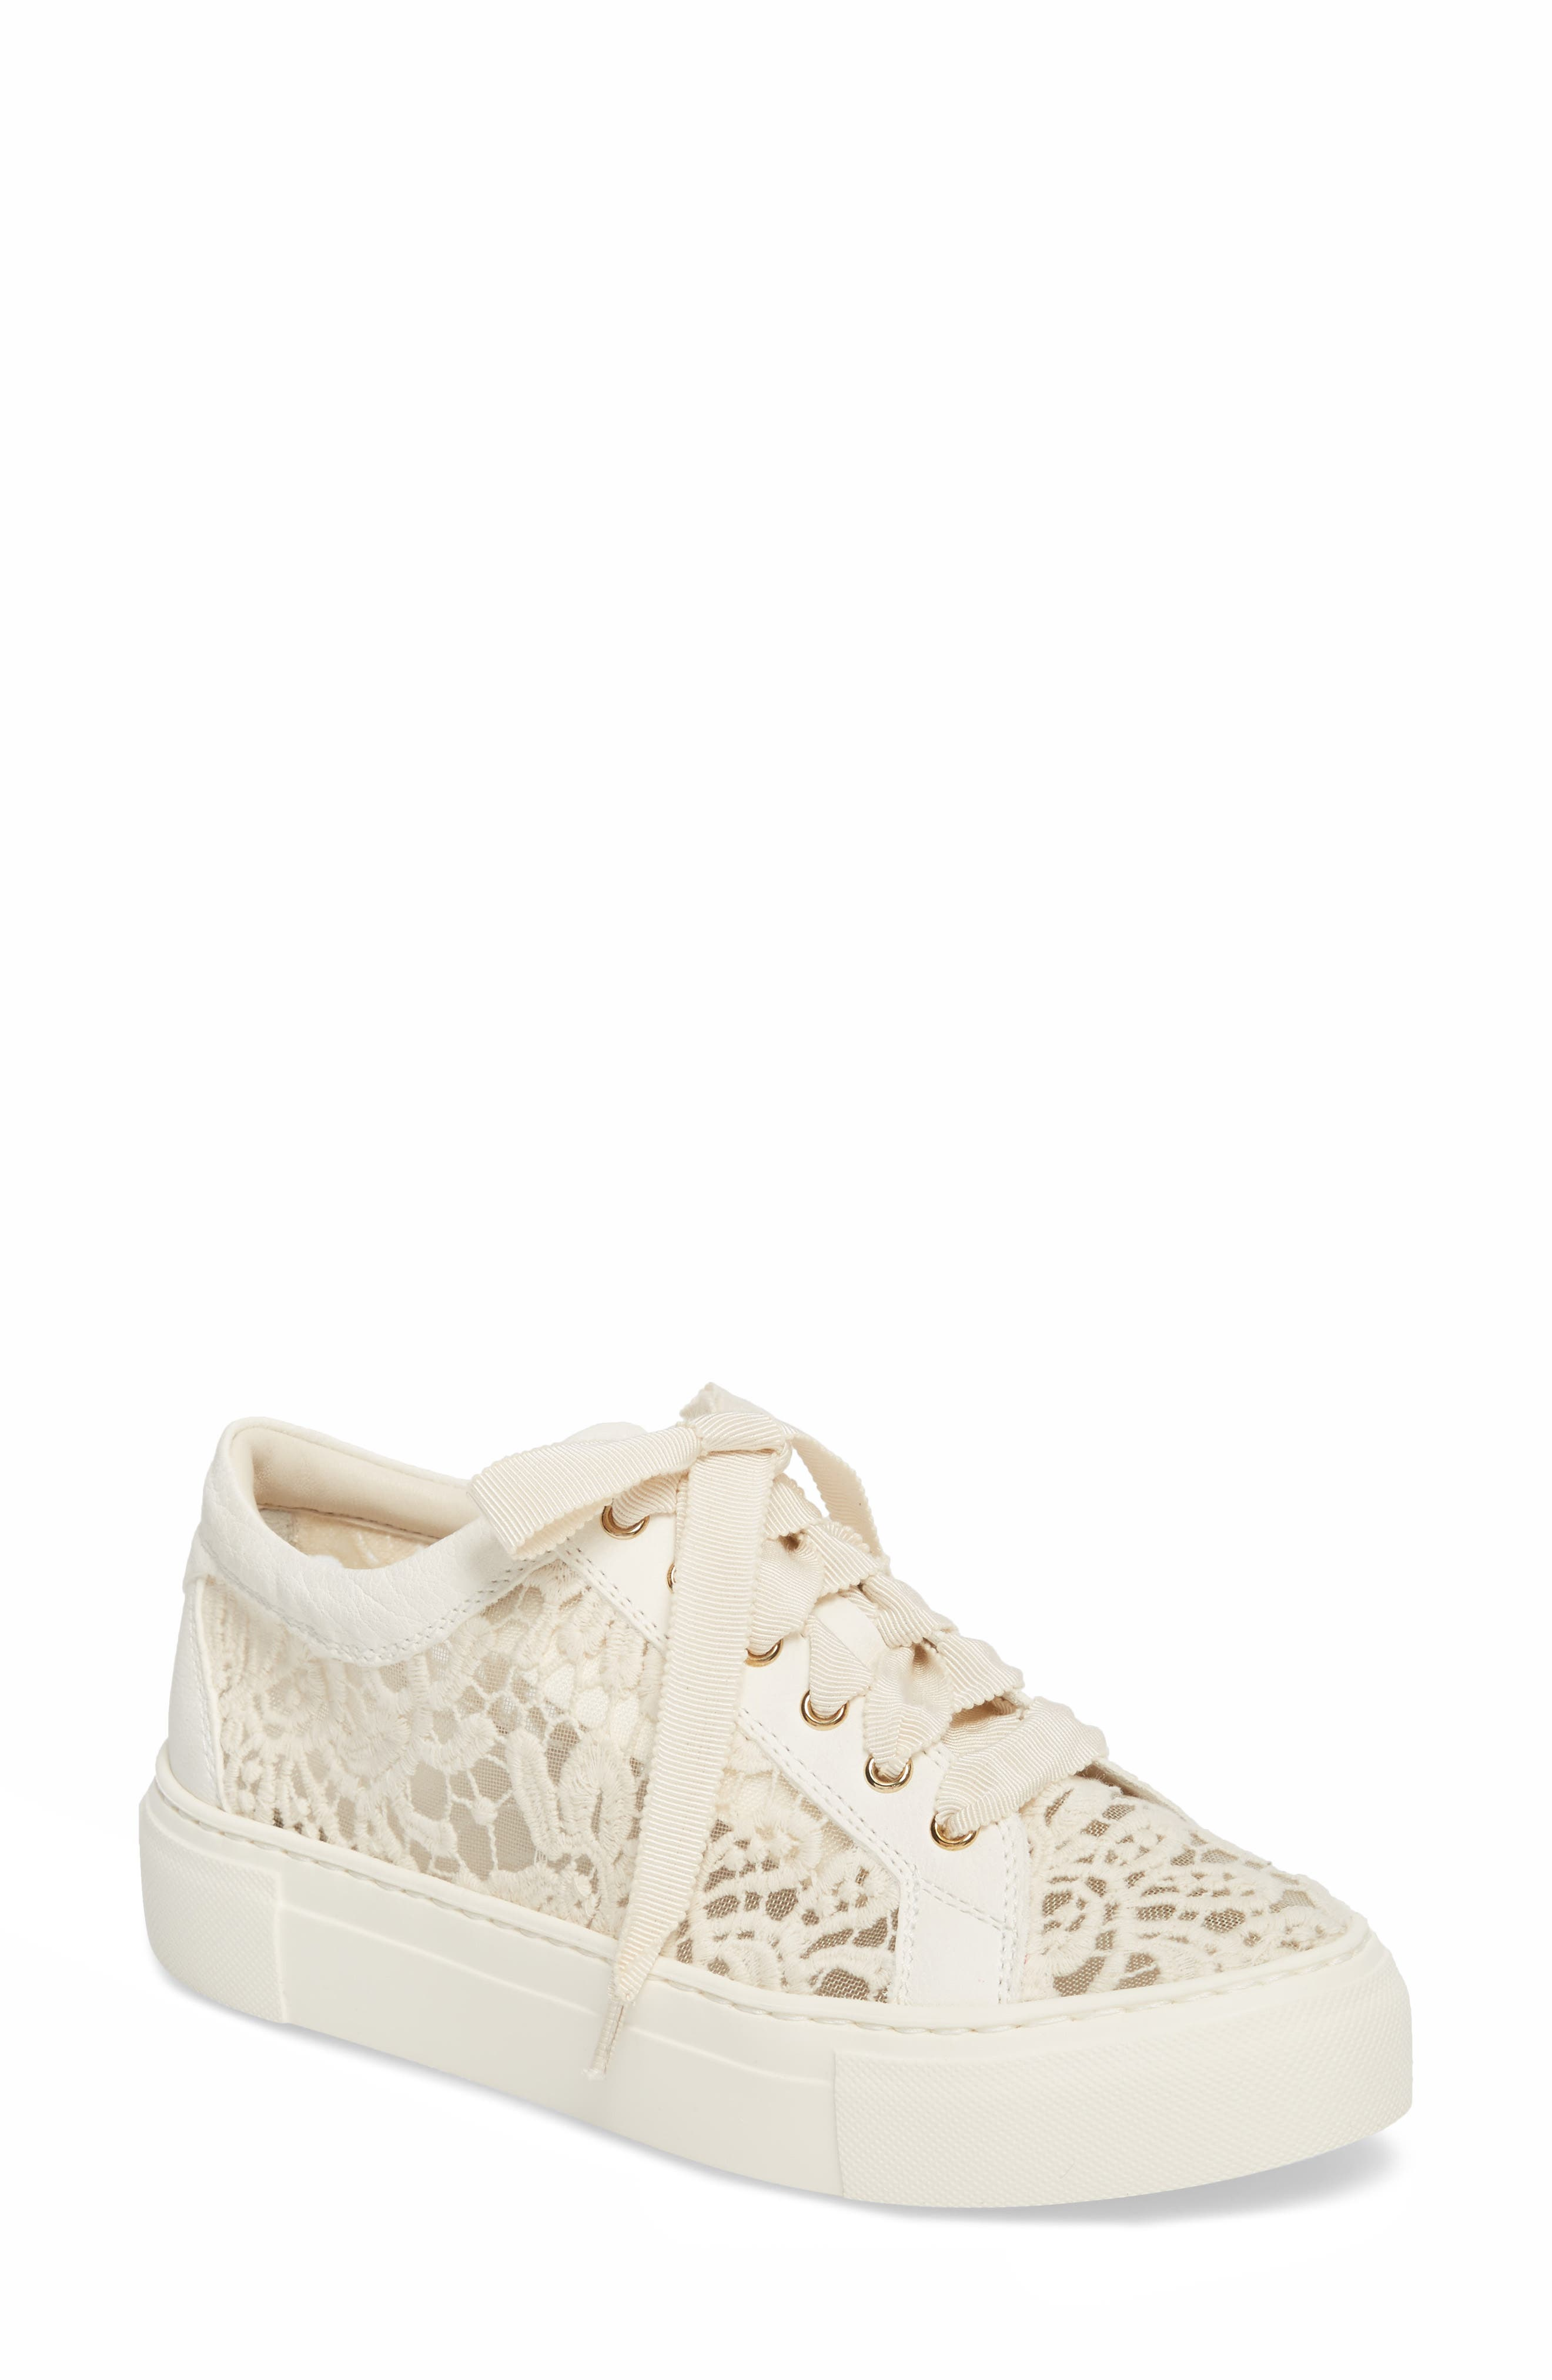 Embroidered Lace Sneaker,                         Main,                         color, OFF WHITE LEATHER